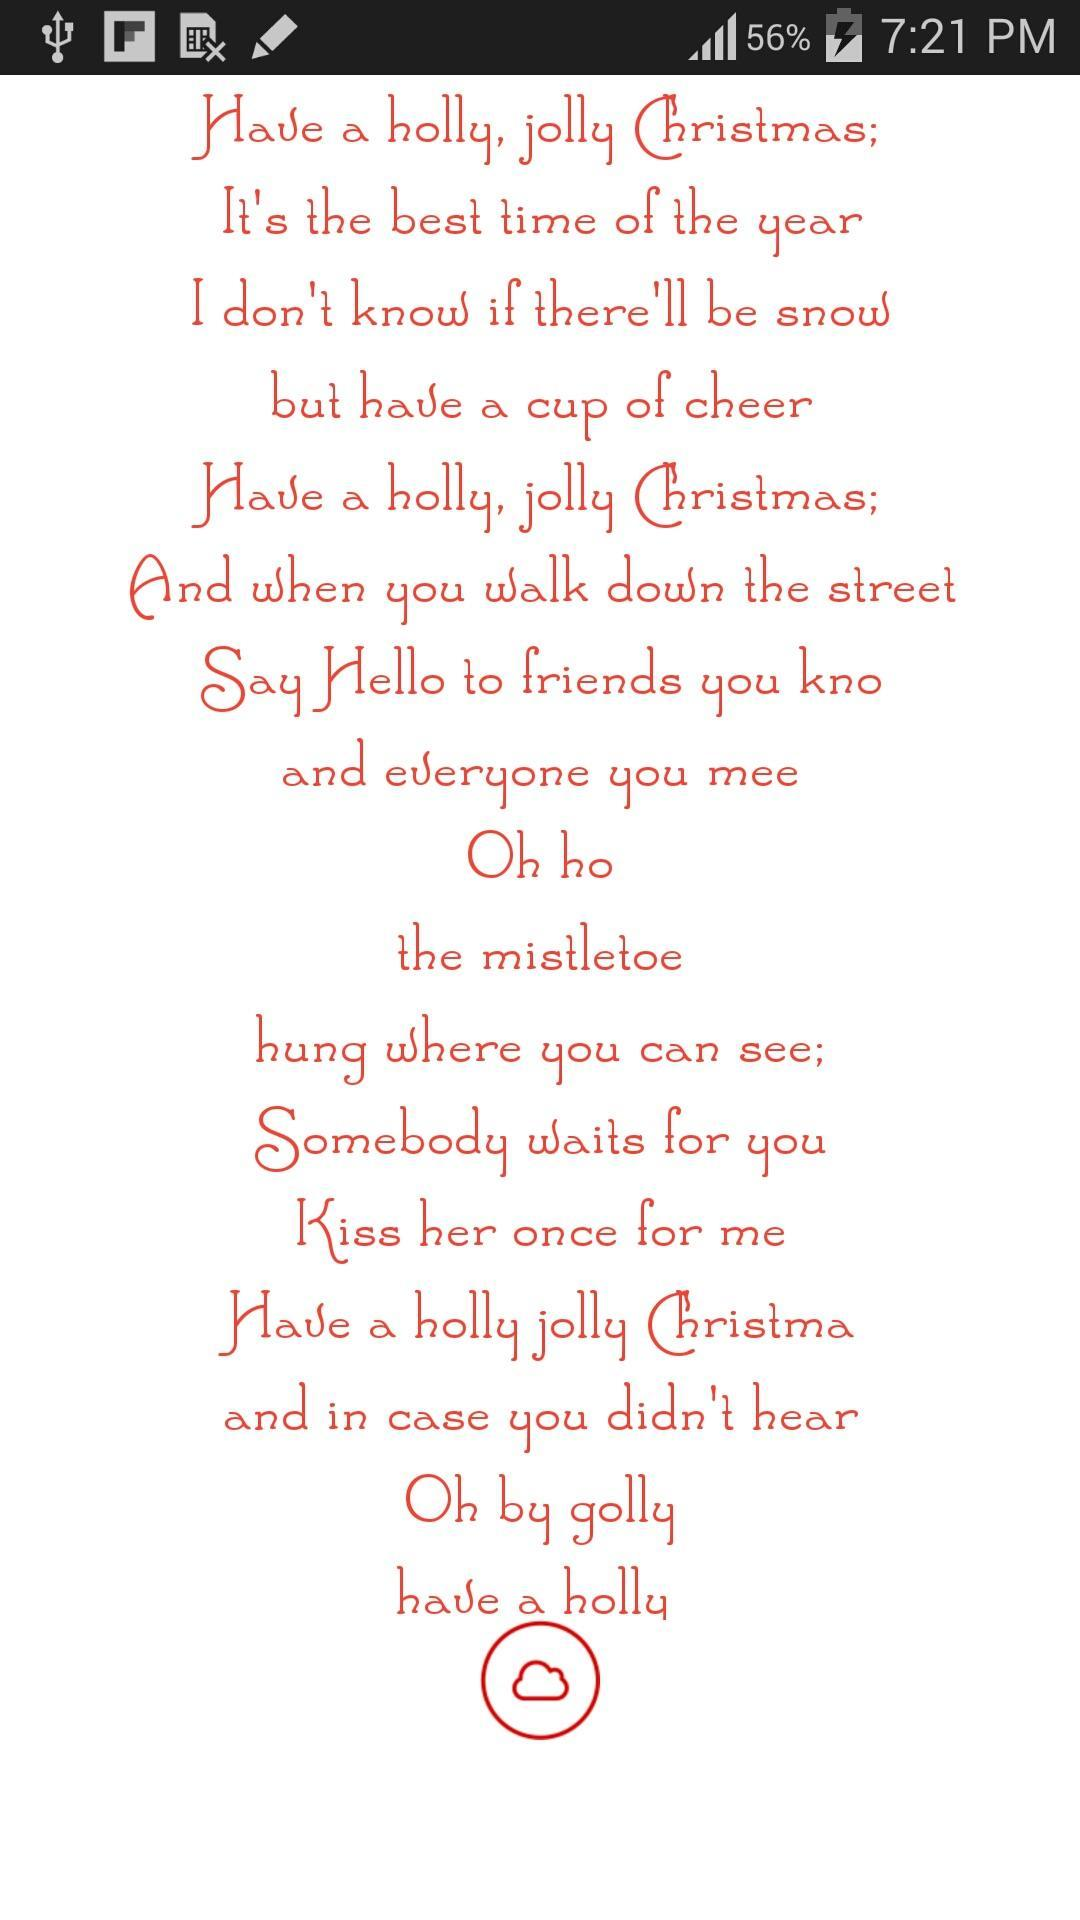 Christmas Carol Lyrics.Christmas Carol Lyrics For Android Apk Download